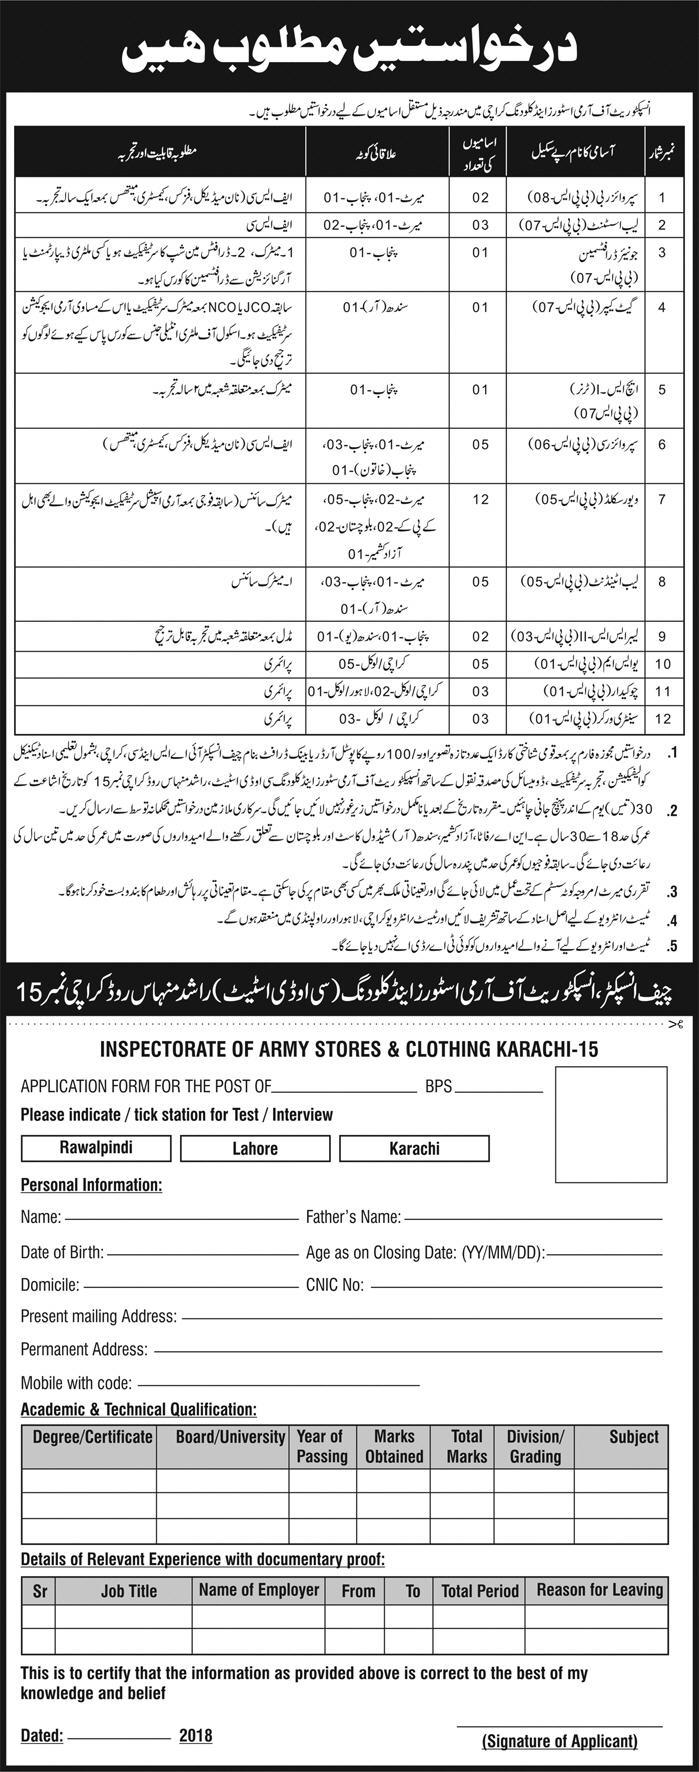 Jobs in Inspectorate of Army Stores & Clothing 03 June 2018